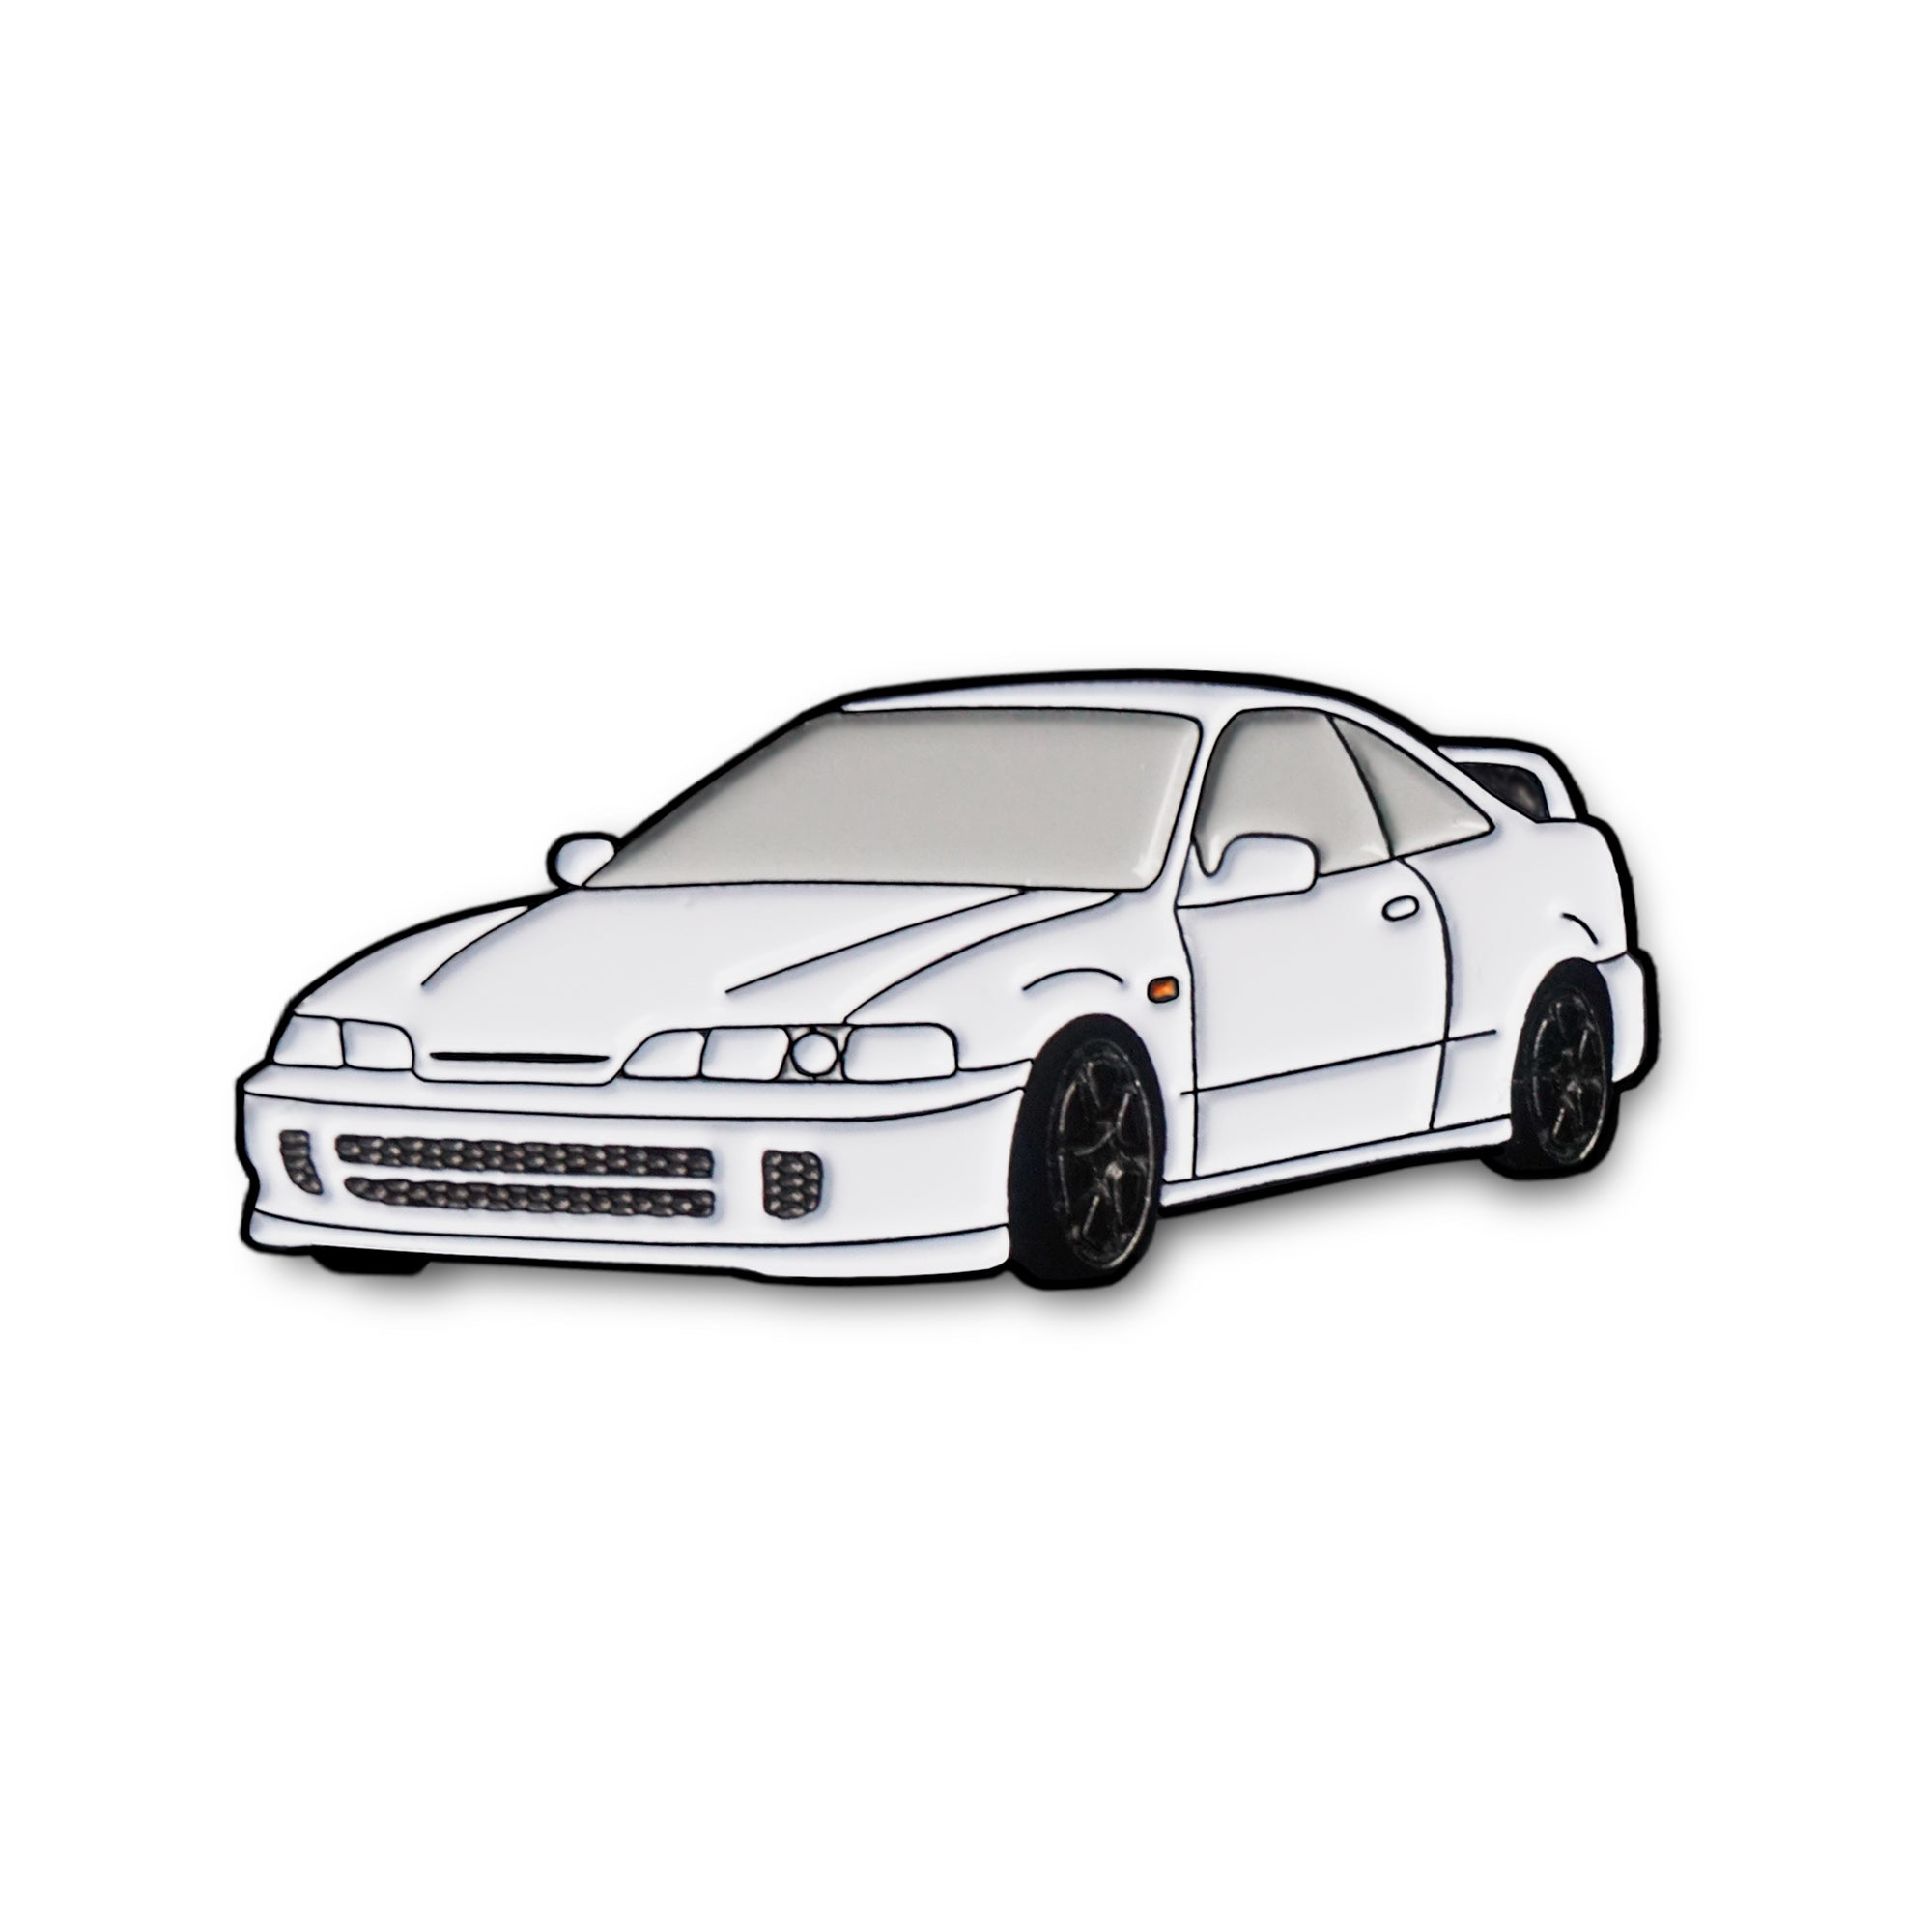 Honda Acura Integra Type R Championship White Car Lapel Enamel Pin On Point Pins